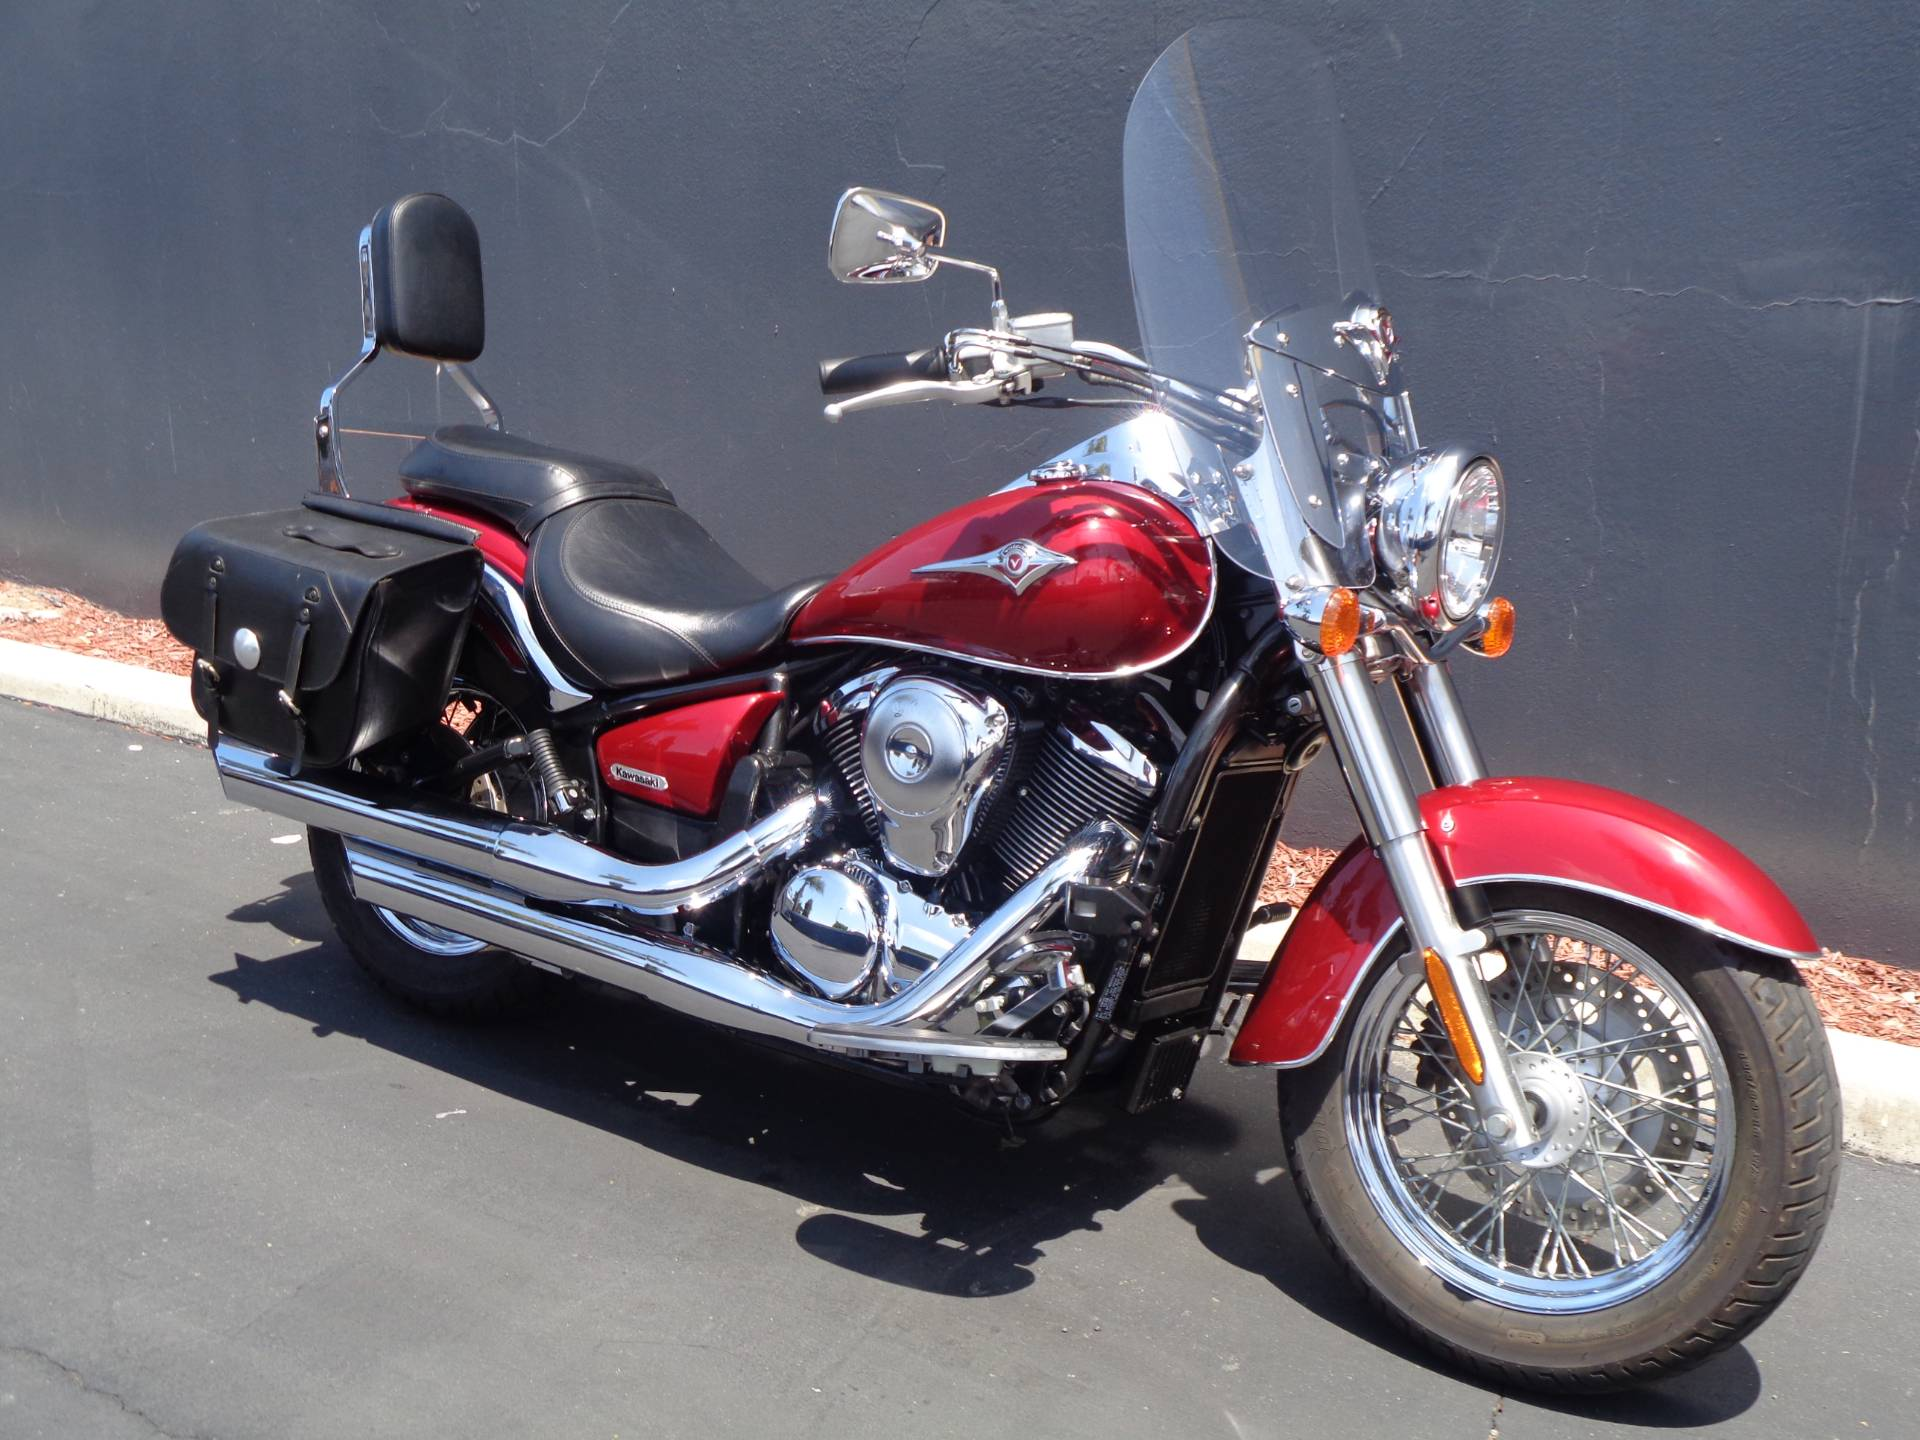 2007 Kawasaki Vulcan® 1600 Classic in Chula Vista, California - Photo 2